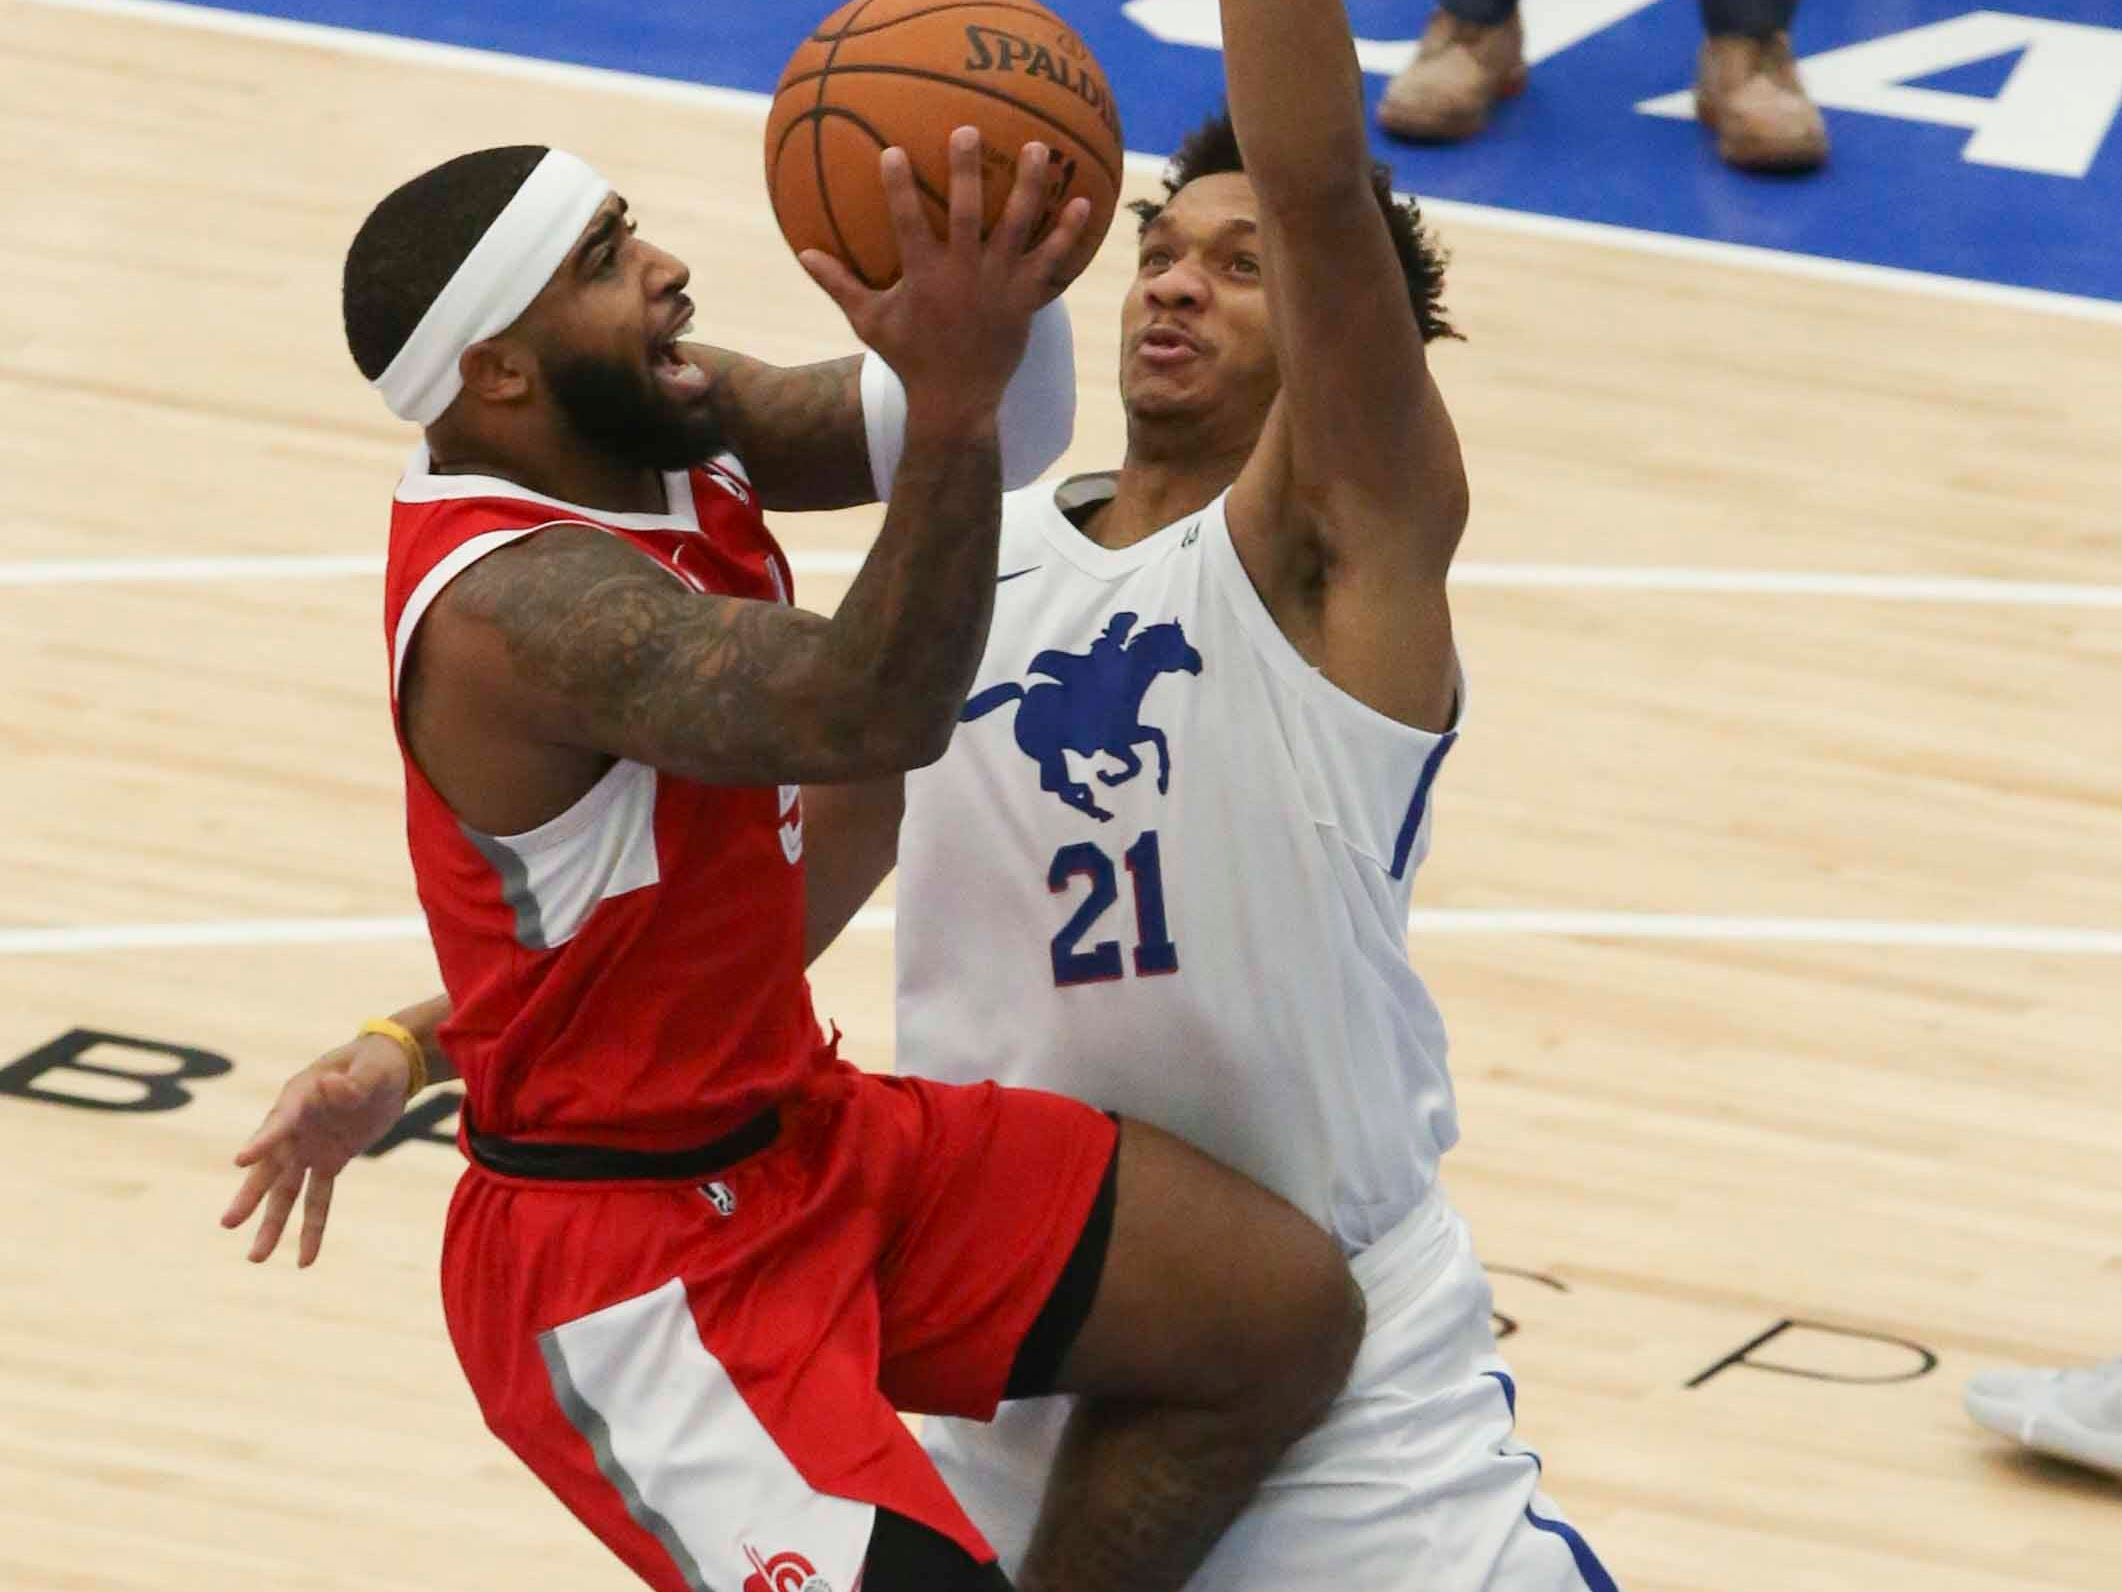 Marcus Keene of the Memphis Hustle (left) drives against the Blue Coats' Rashad Vaughn as the Delaware Blue Coats of the NBA G-League open the 76ers Field House in Wilmington Wednesday.